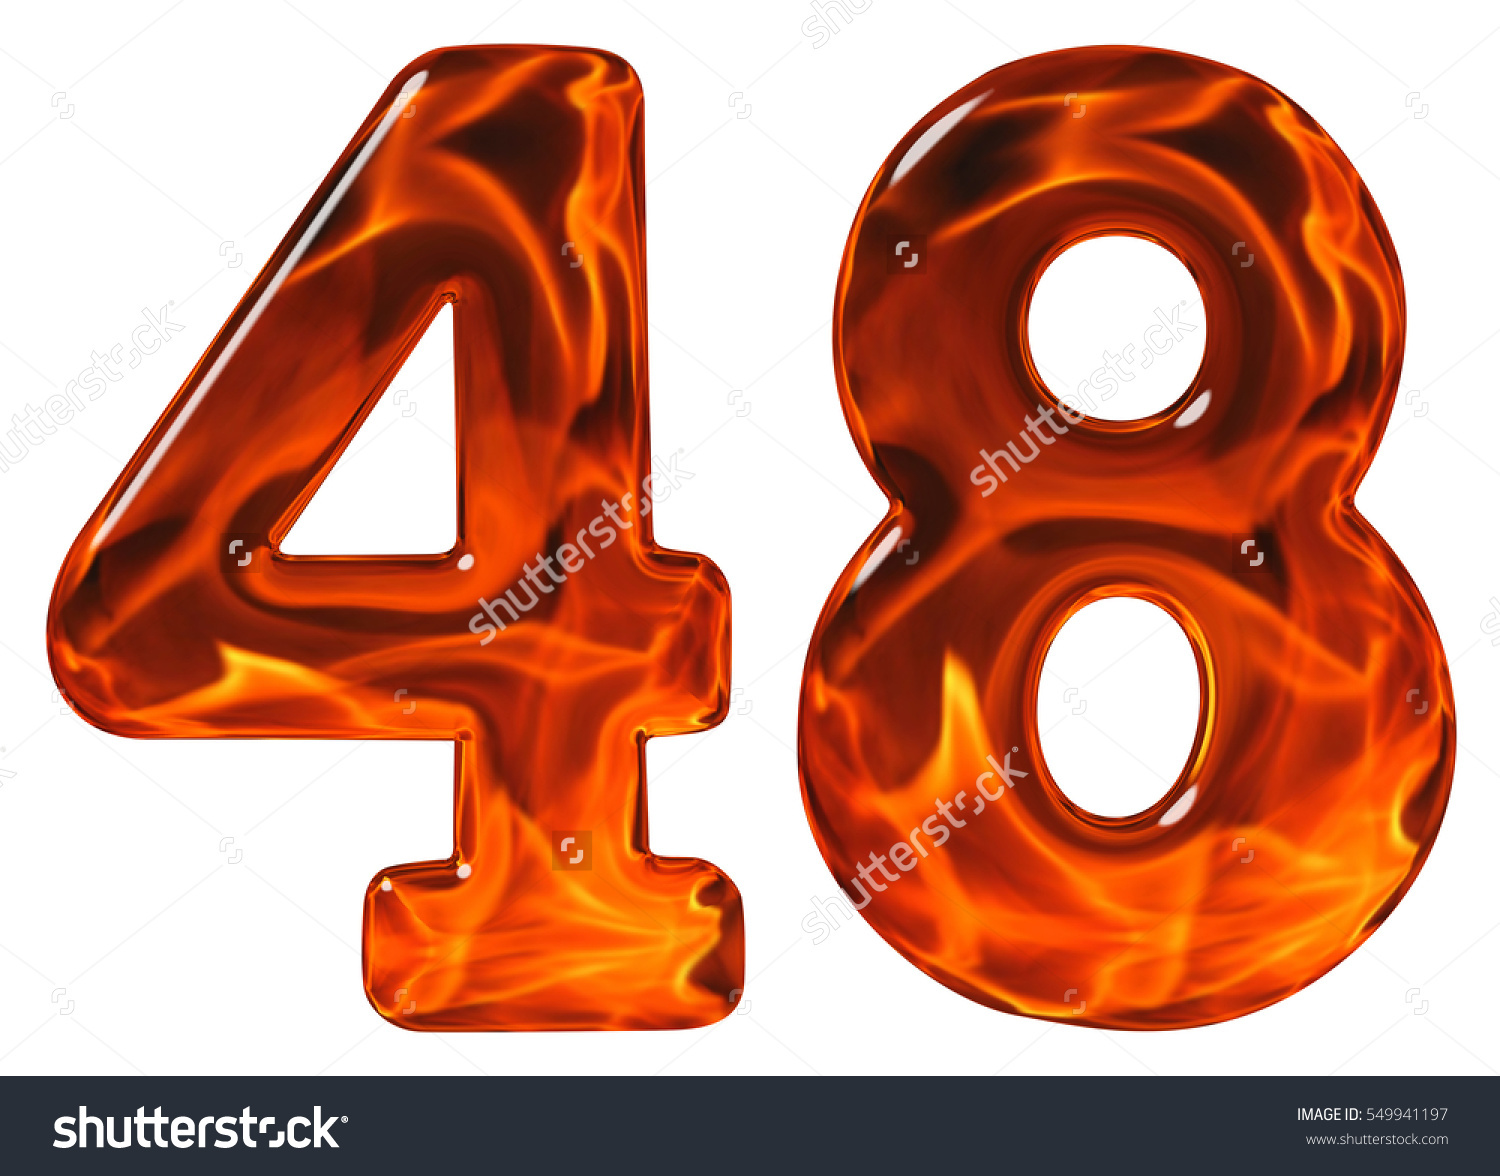 48 Forty Eight Numeral Imitation Glass Stock Photo 549941197.